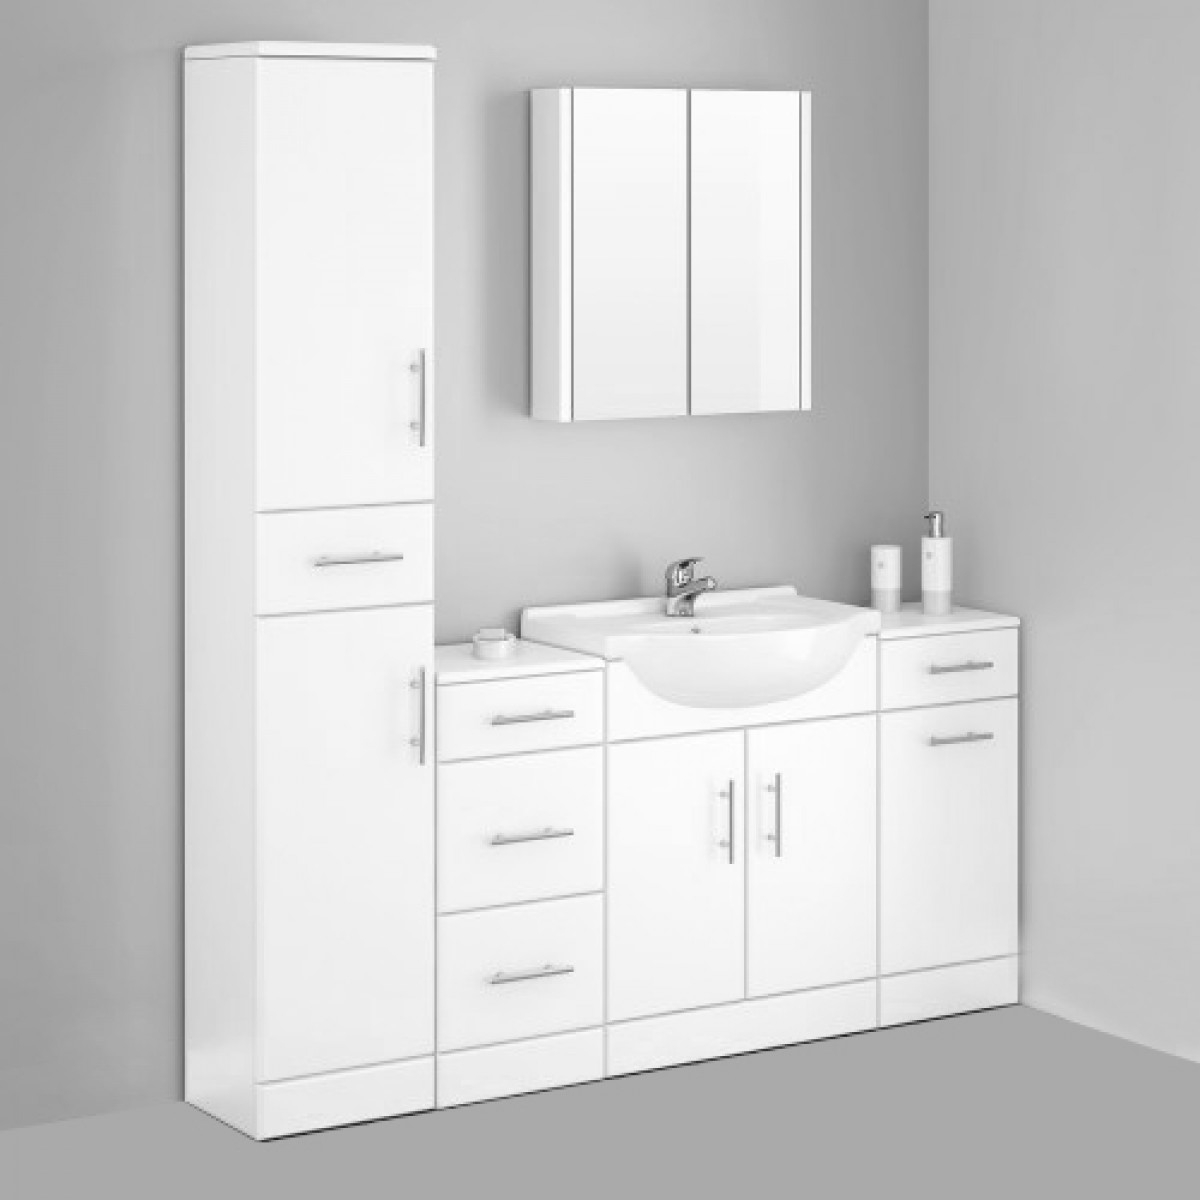 Alaska Bathroom Furniture Pack 5 Piece White Gloss with regard to proportions 1200 X 1200